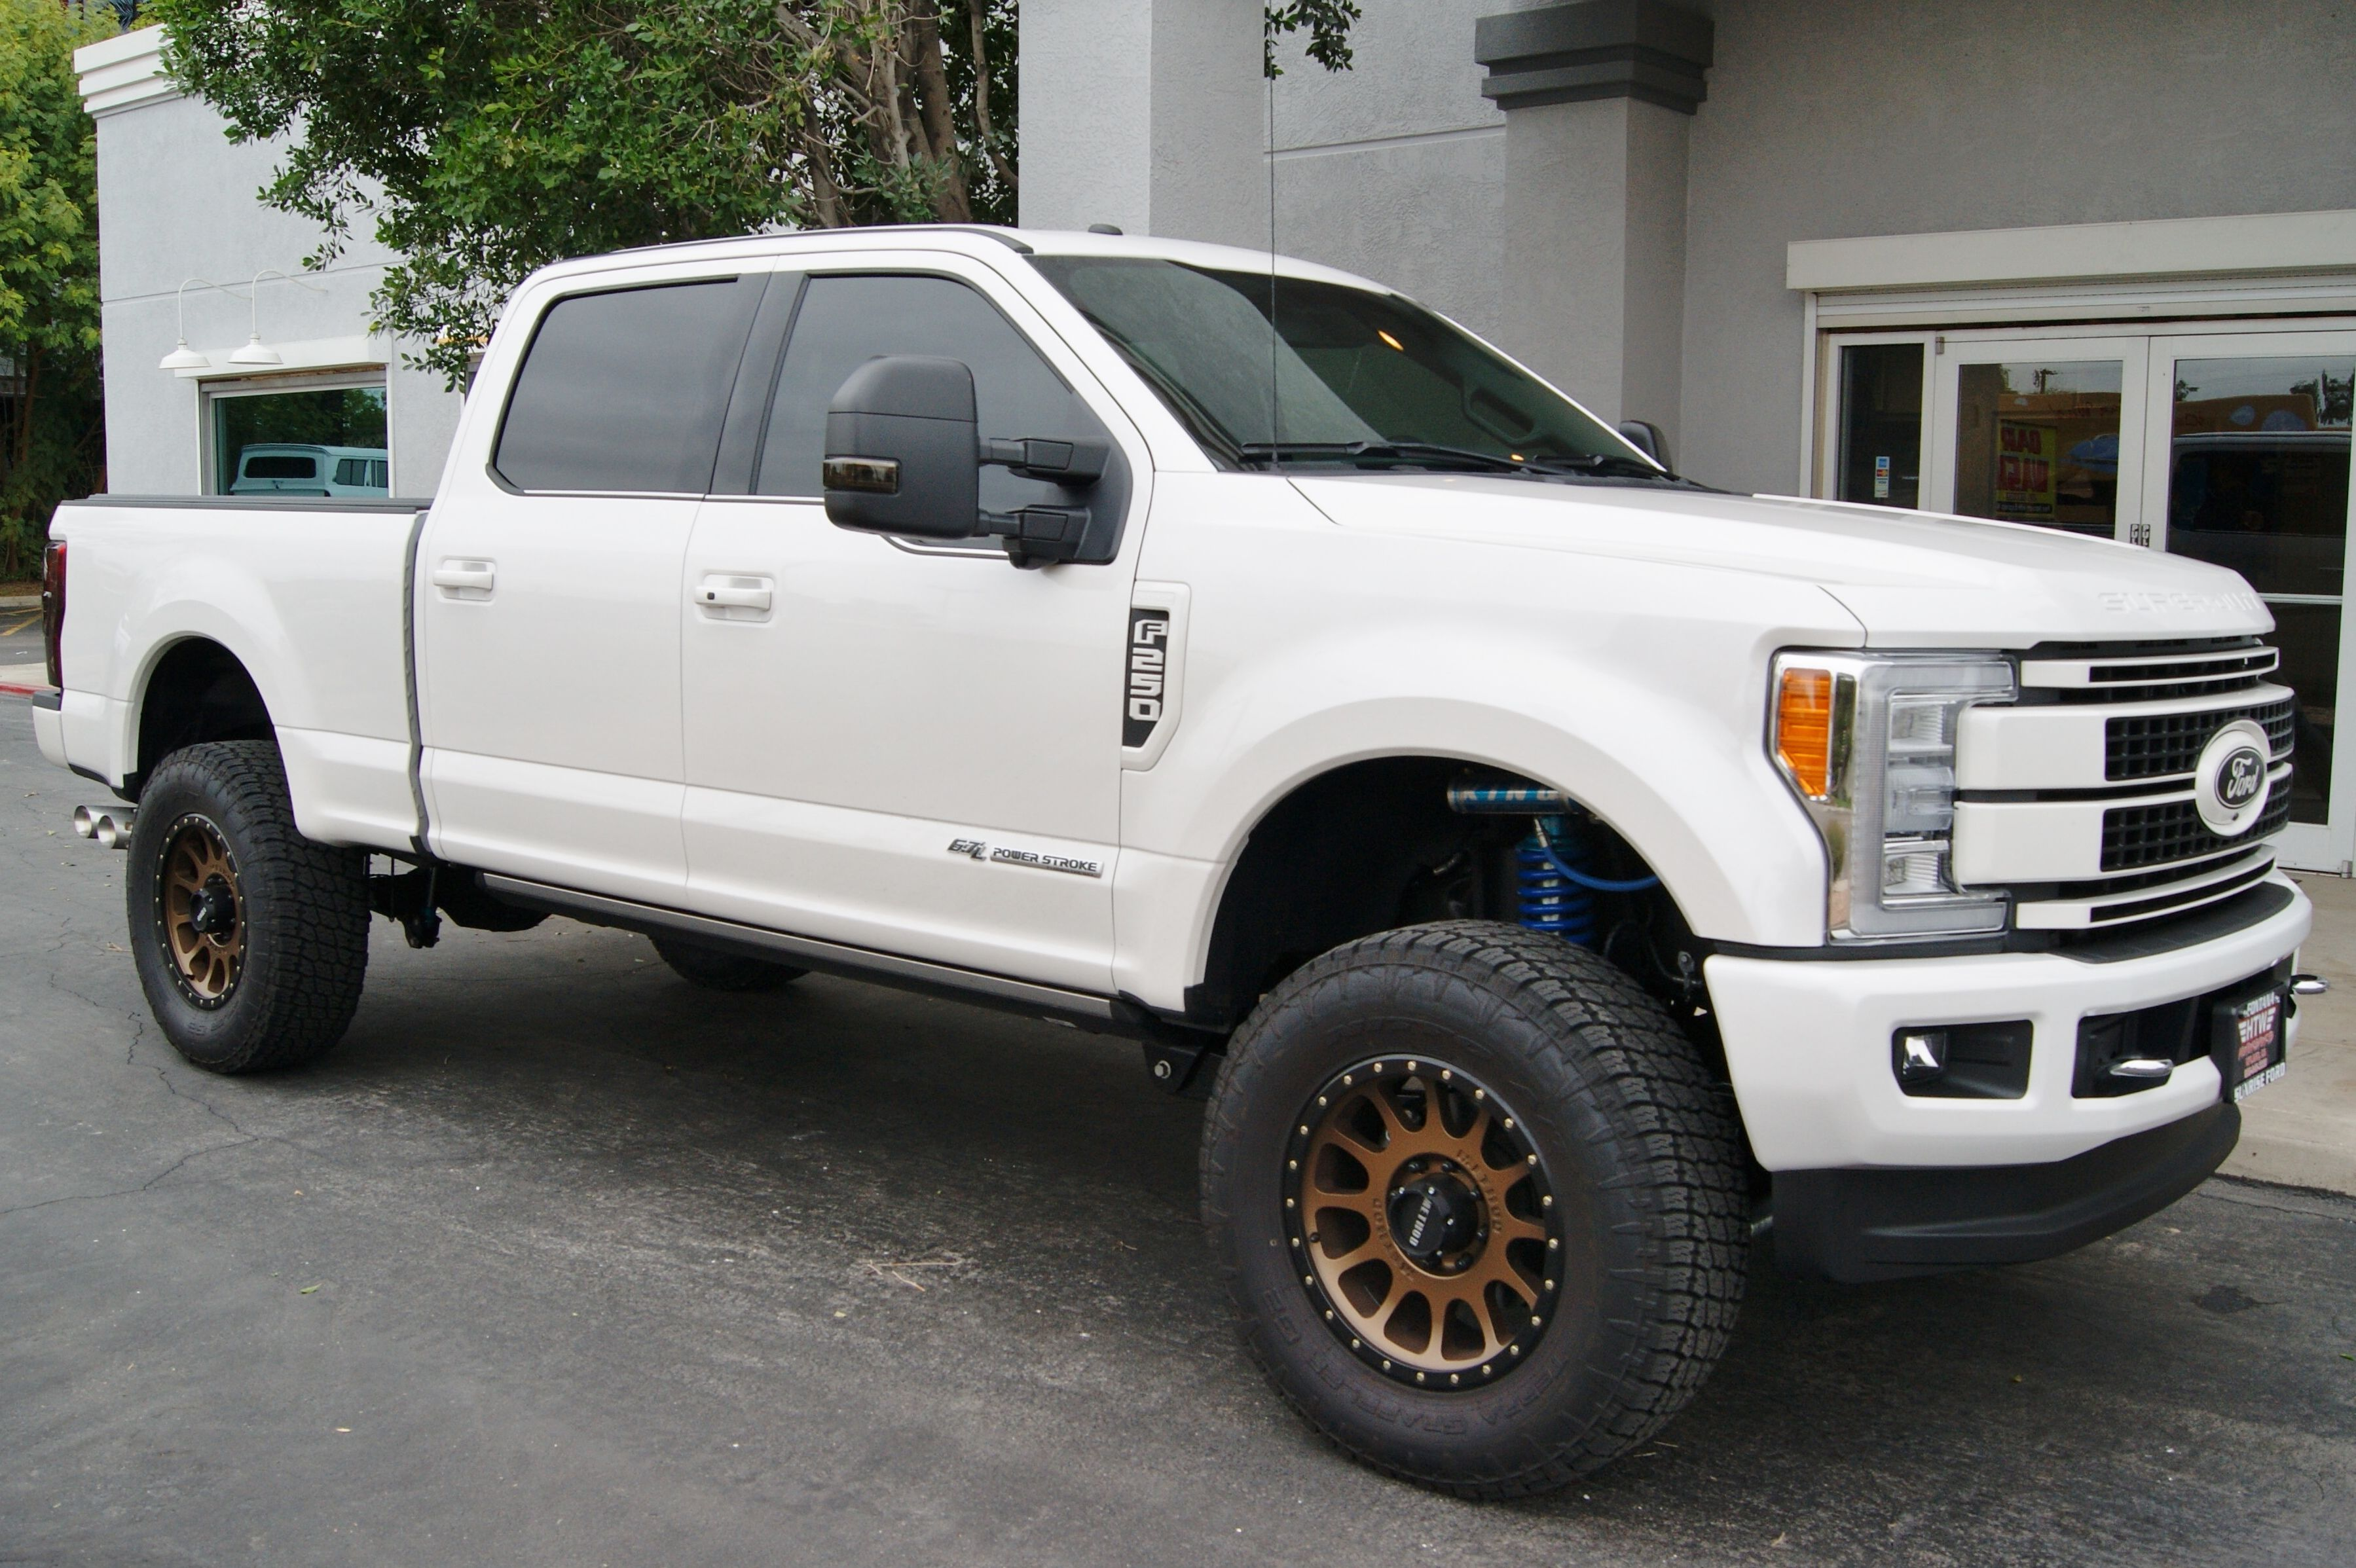 King Coal Chevrolet >> 2017 Ford F-250 Superduty Platinum White • 20x9 Method Racing NV305 Bronze +18mm • 37X12.50R20 ...